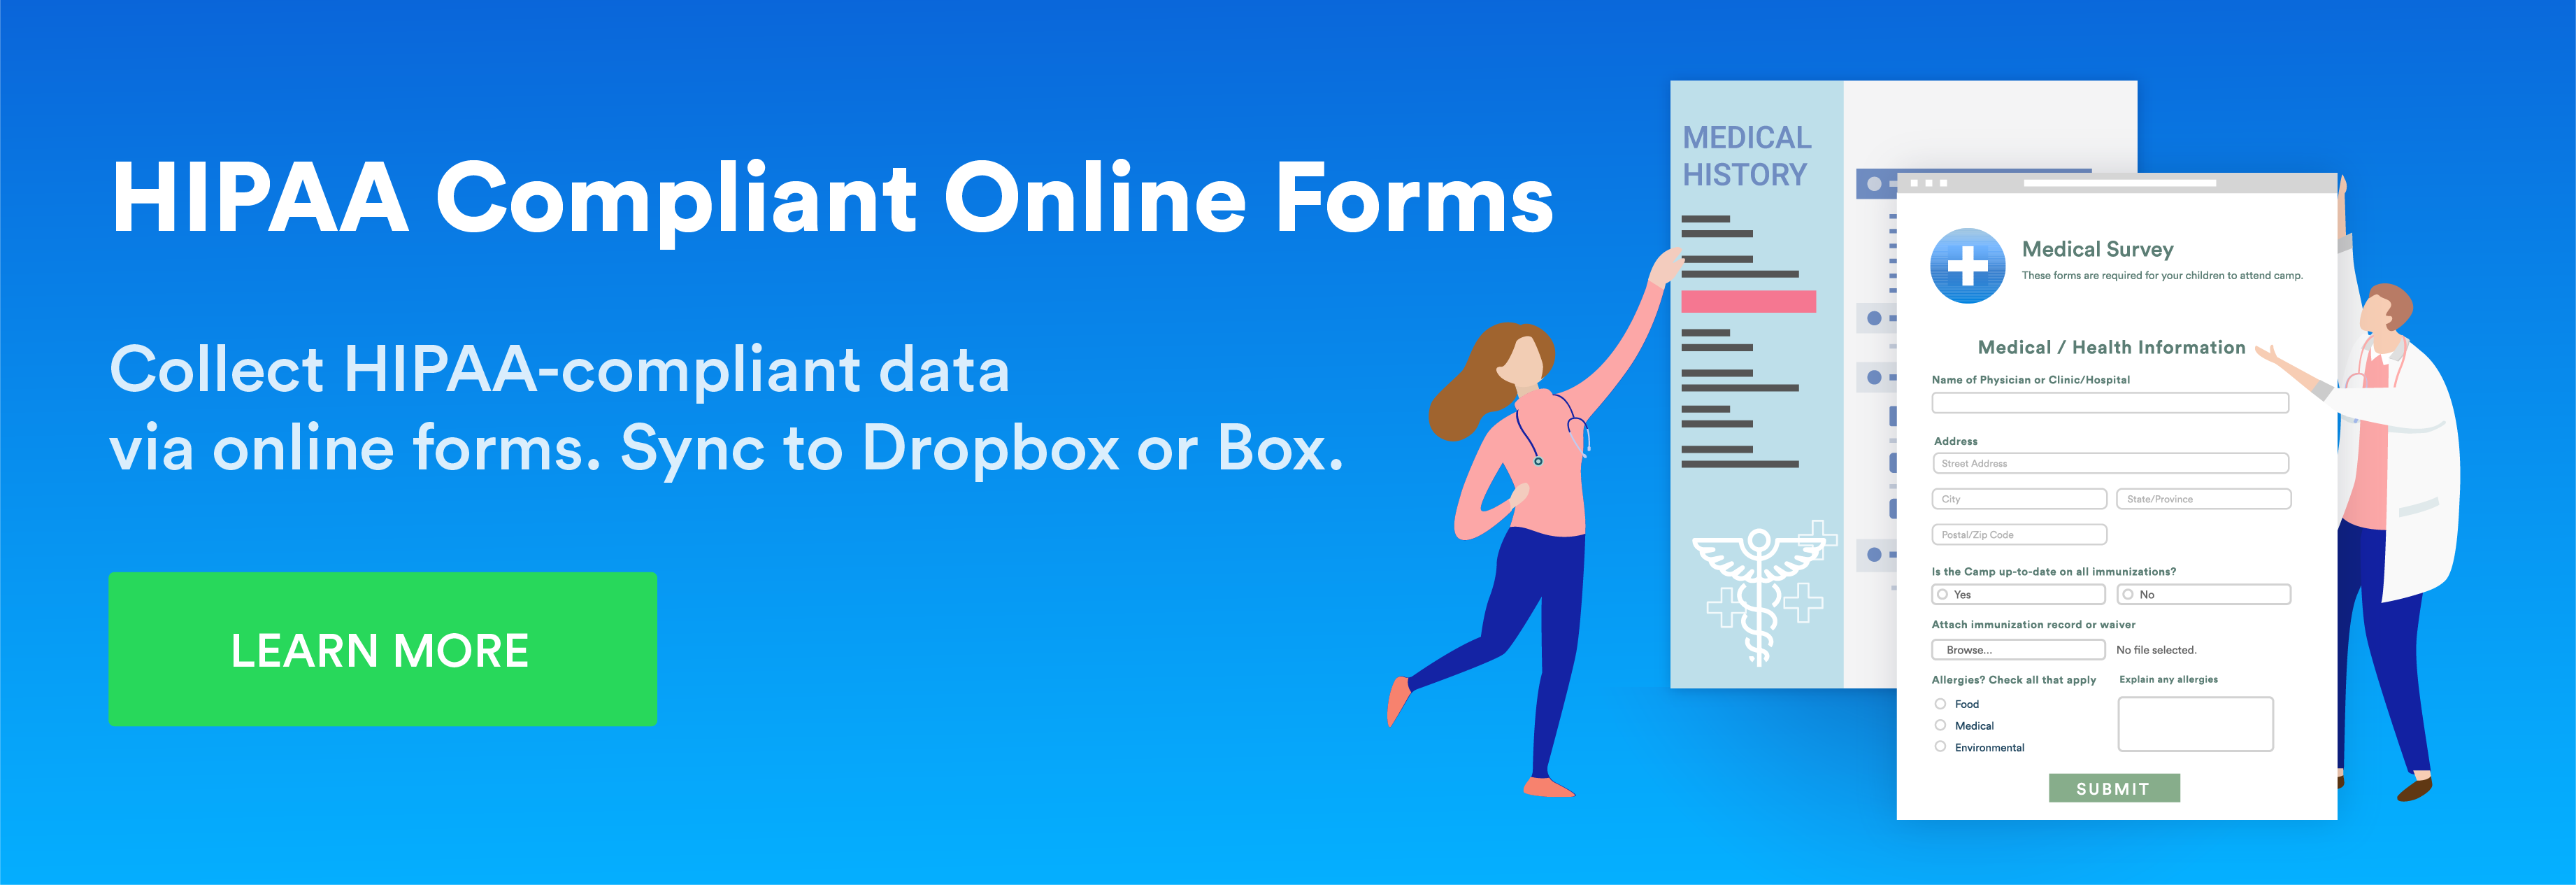 Collect HIPAA-compliant data via online forms. Sync to Dropbox or Box.